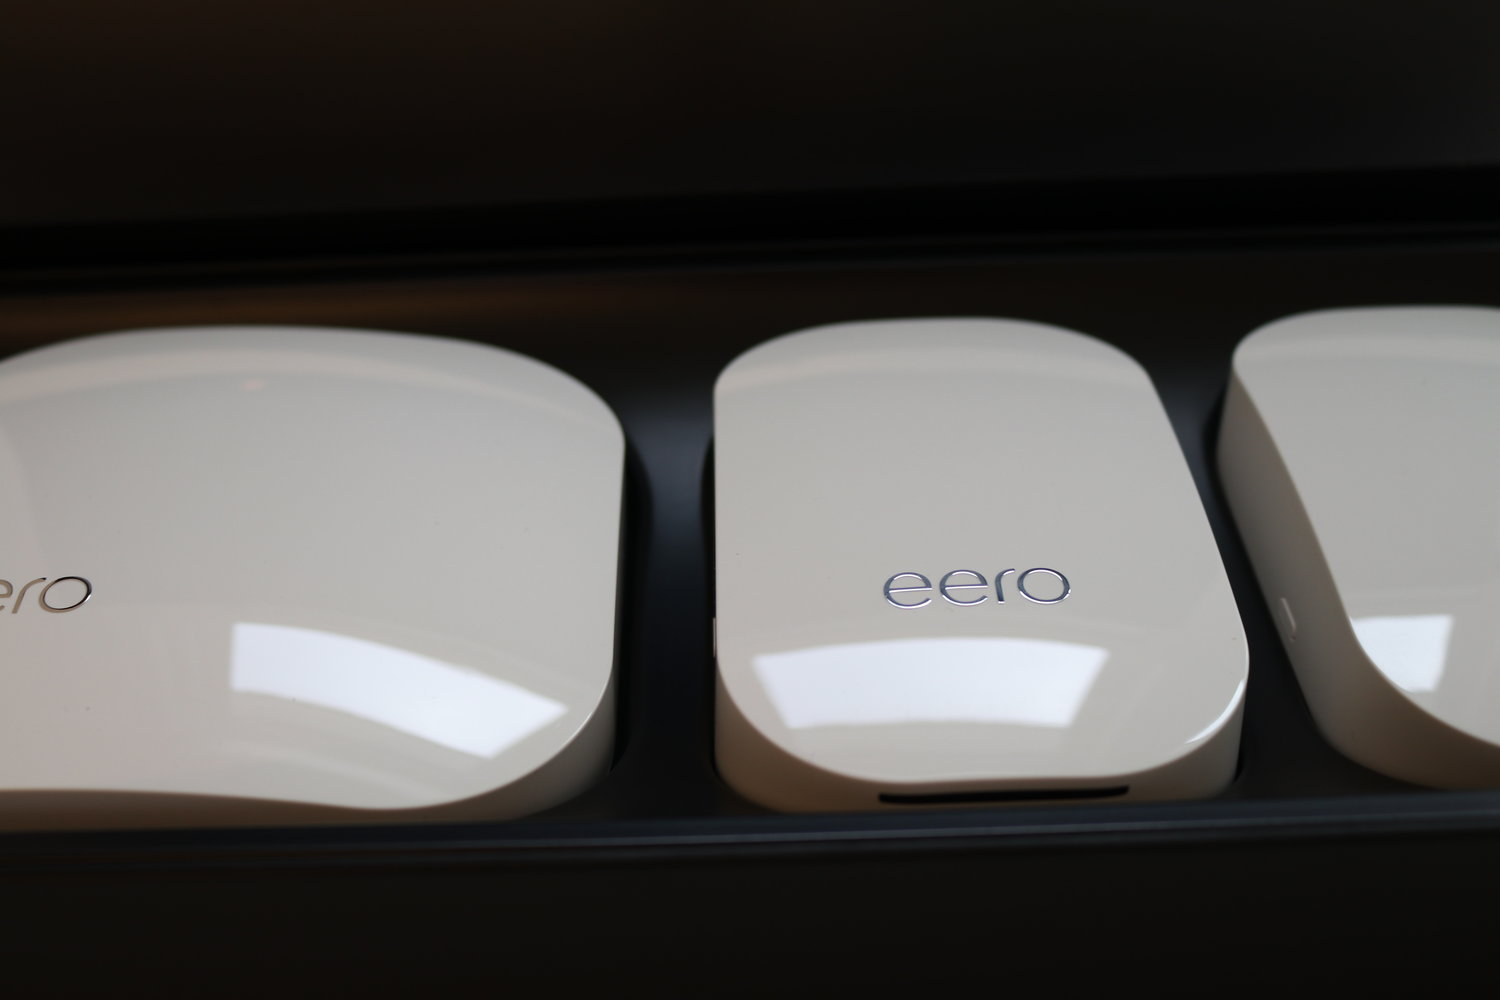 eero  is The Best Wifi ROUTER TO USE WITH NEST